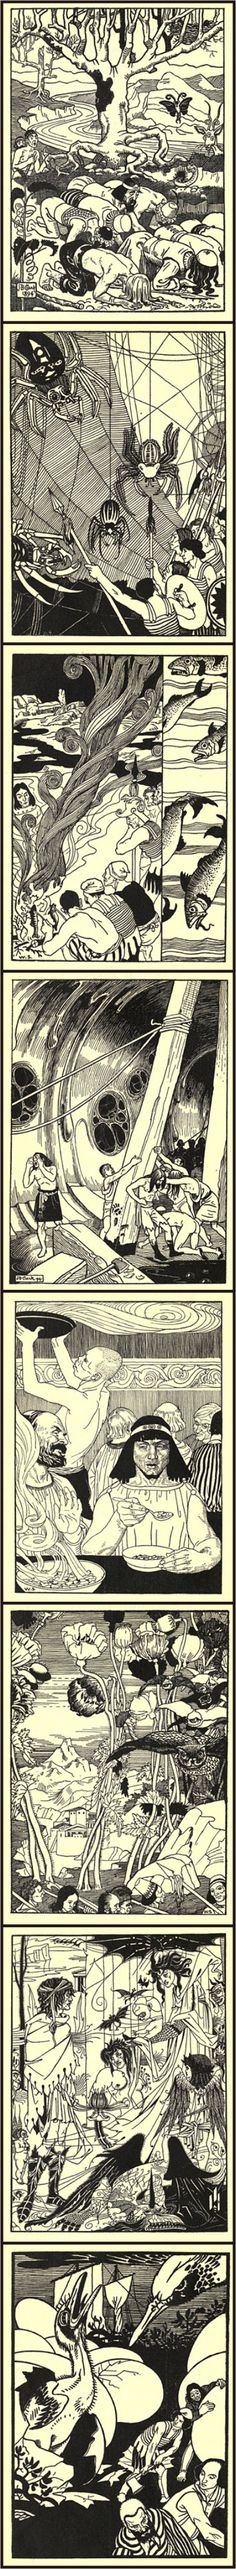 """Aubrey Beardsley: illustrations for the 1894 version of """"True History"""" by Lucian of Samosata, written in the 2nd c. BC, considered to be the first science-fiction story"""